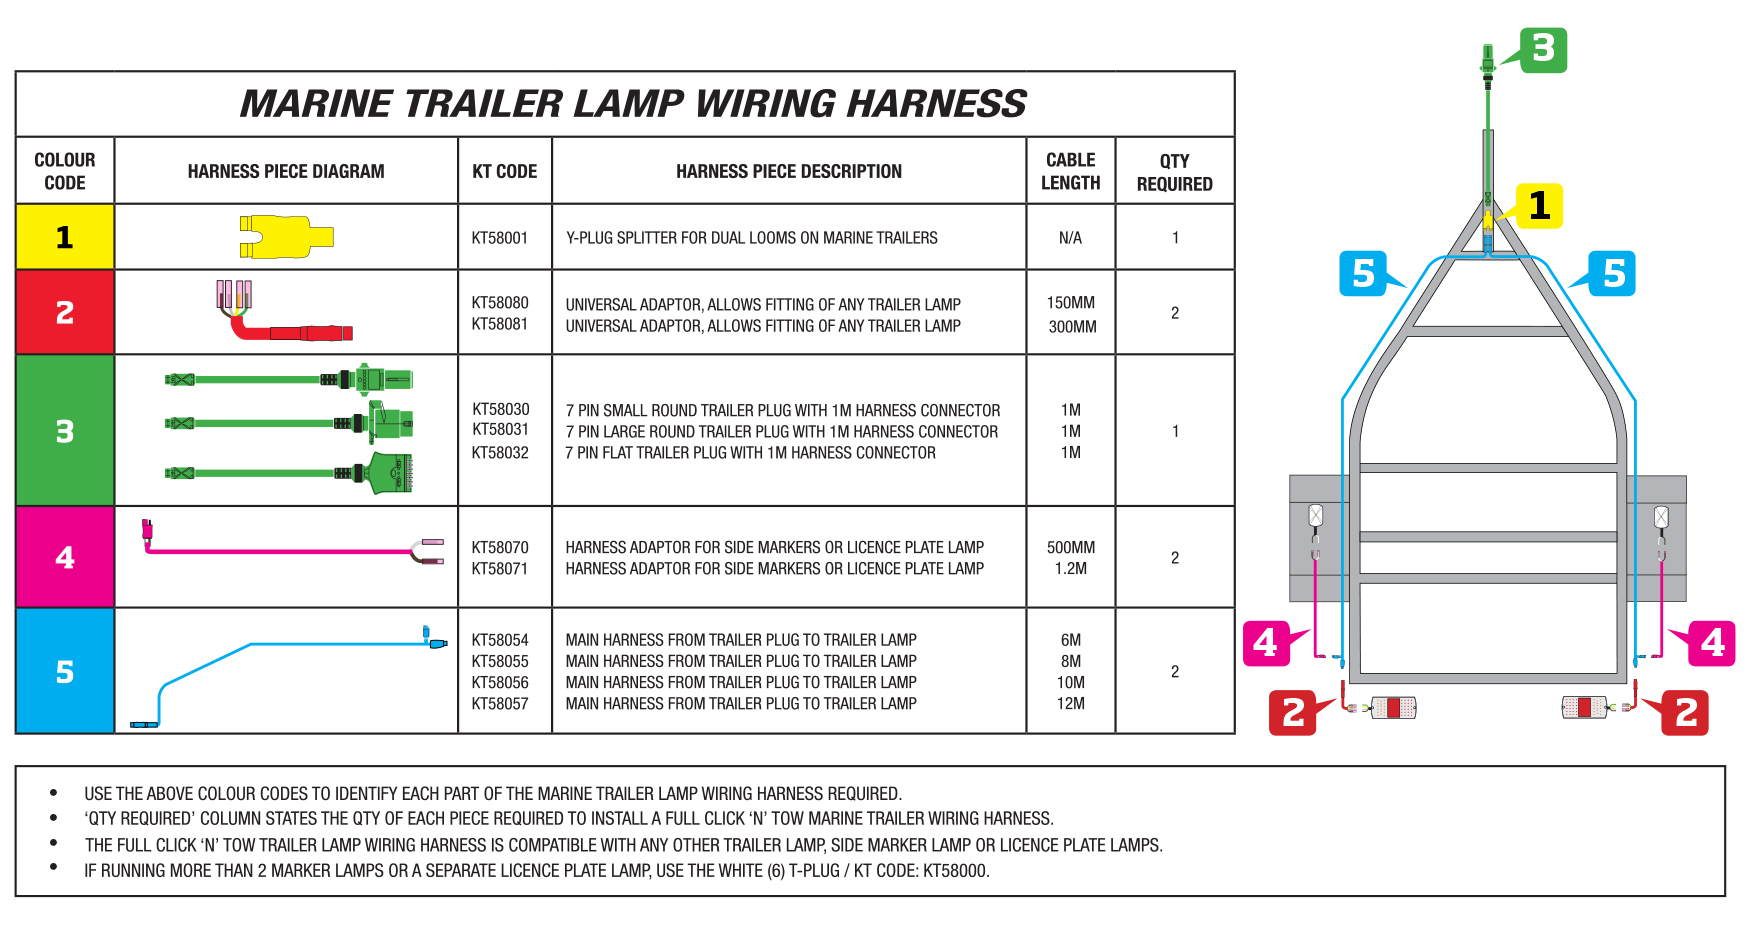 click n tow 148 5mm x 210mm print ready wiring diagram for multiple light fixtures make it with pallets tow ready trailer wiring diagram at soozxer.org